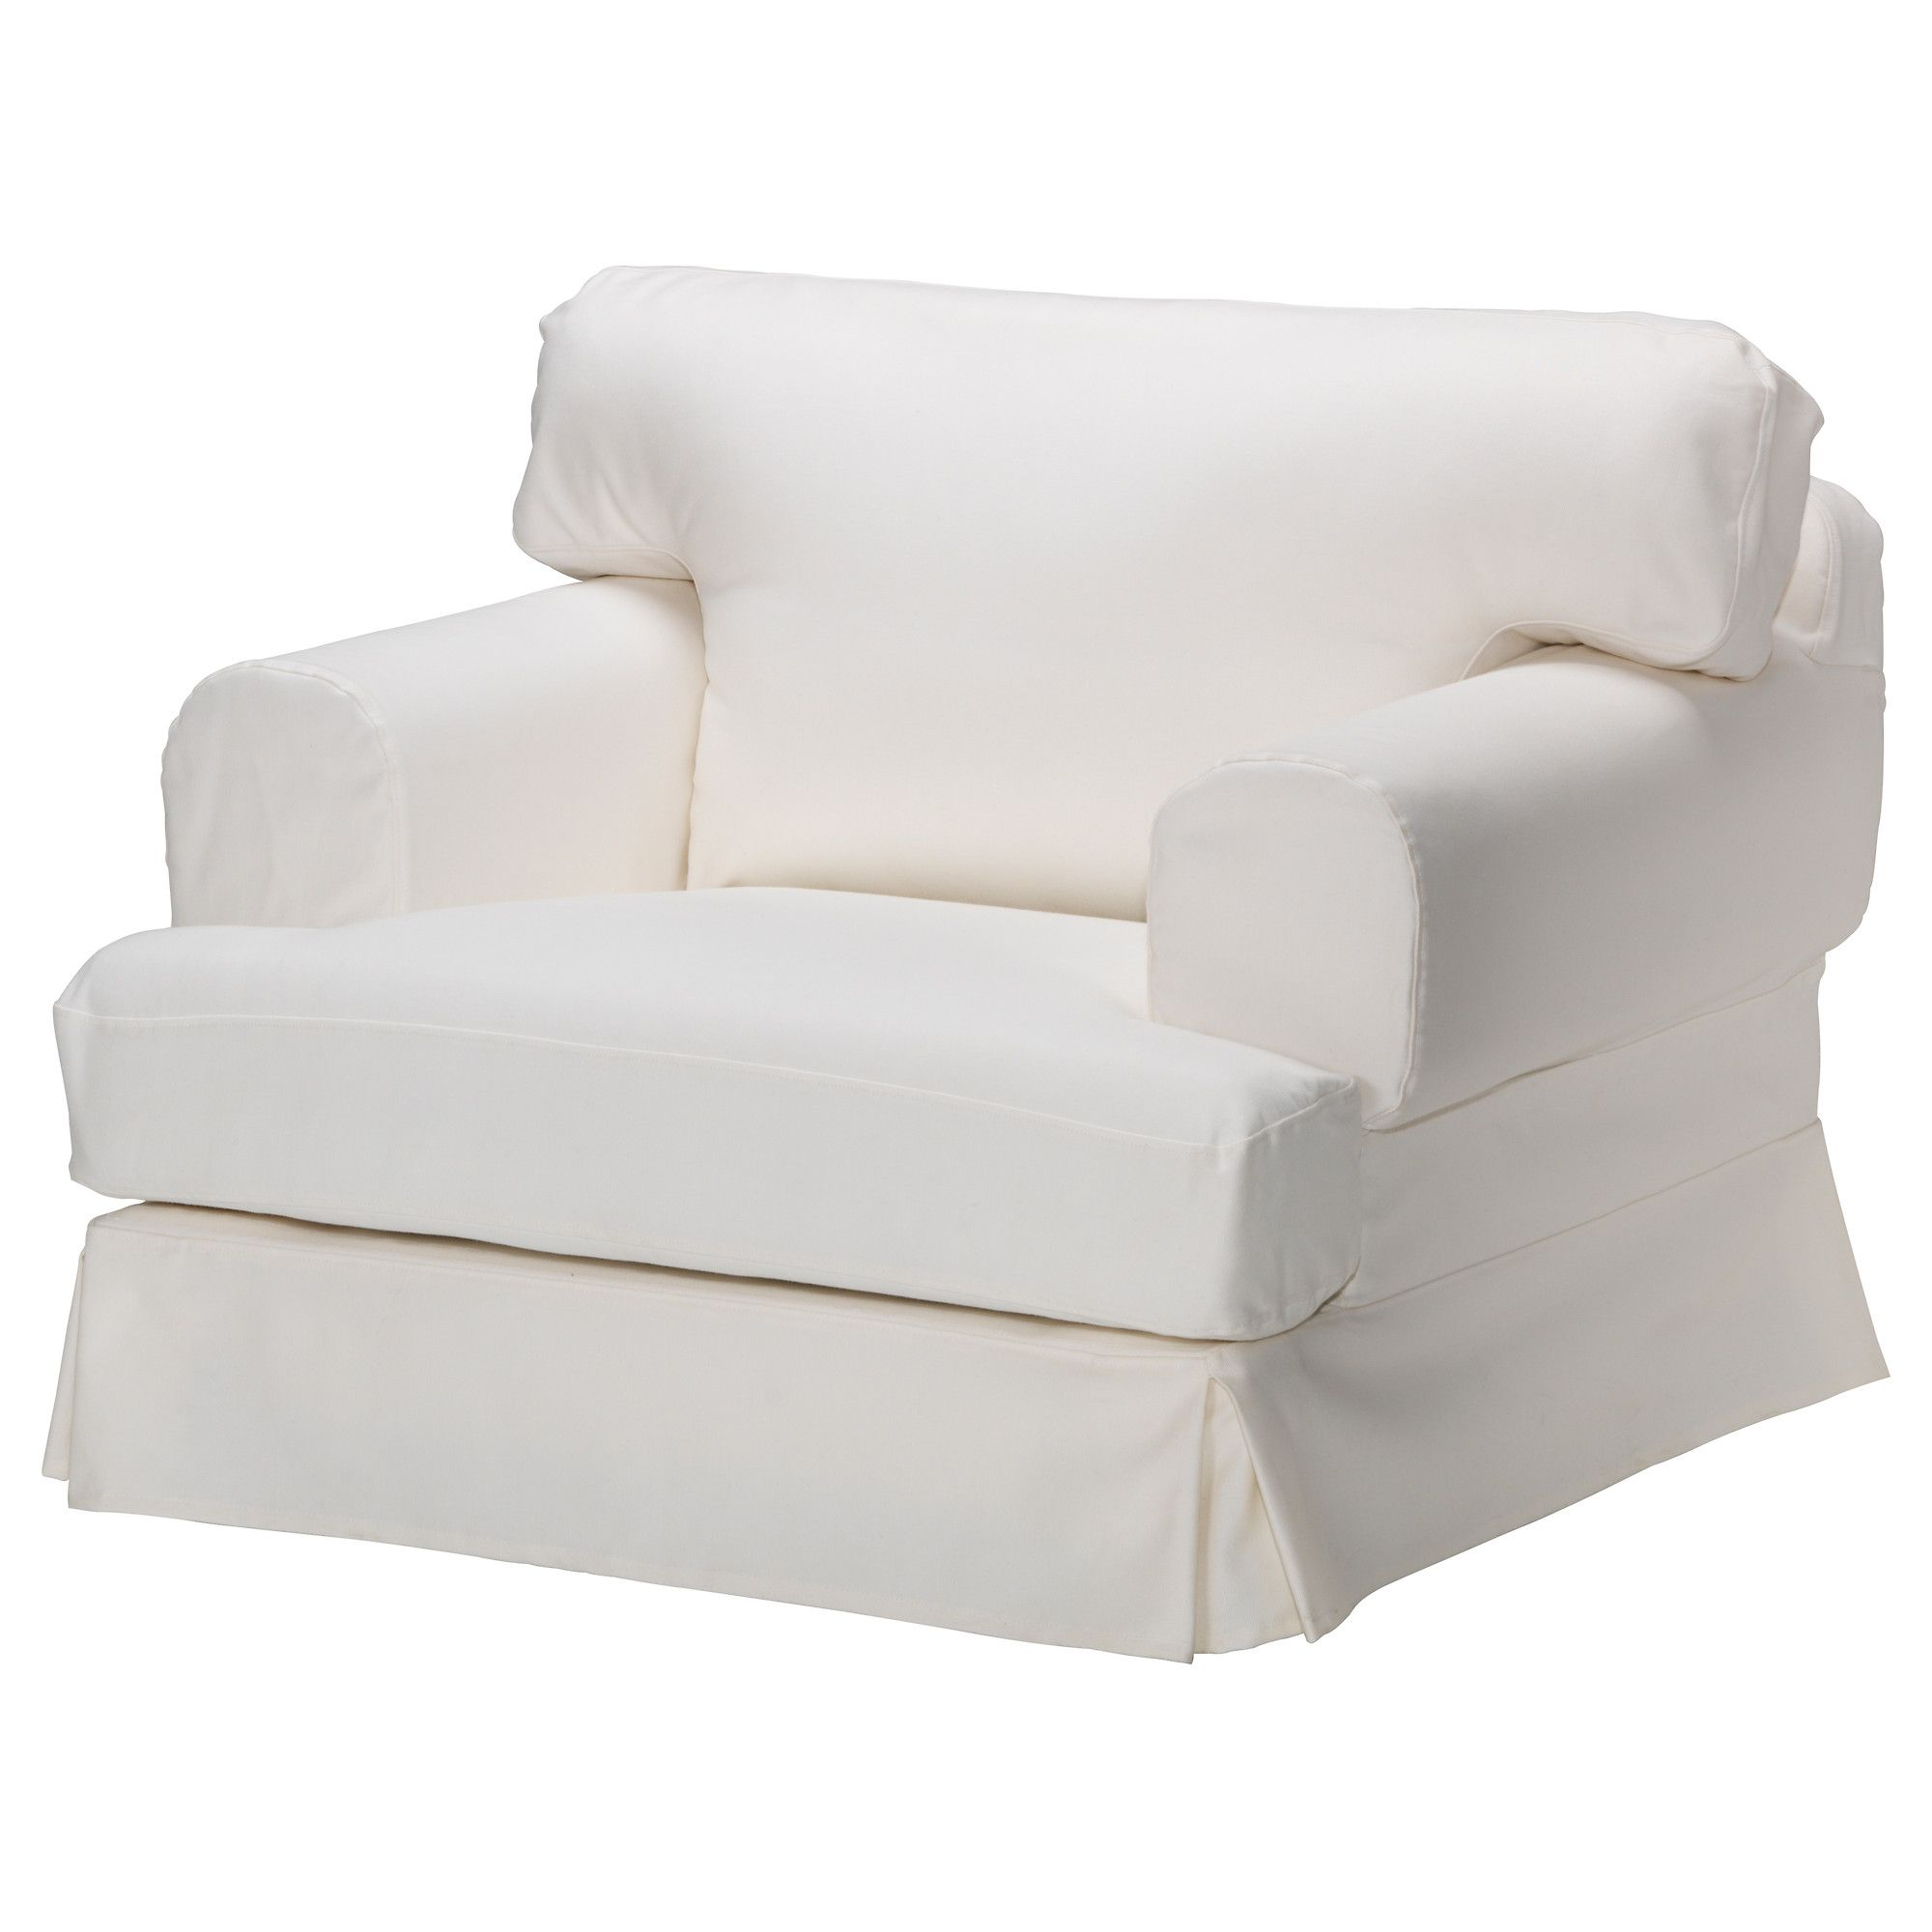 Ikea Hovas Sofa Click Clack Double Bed White Furniture Can Make Any Room Feminine HovÅs Chair